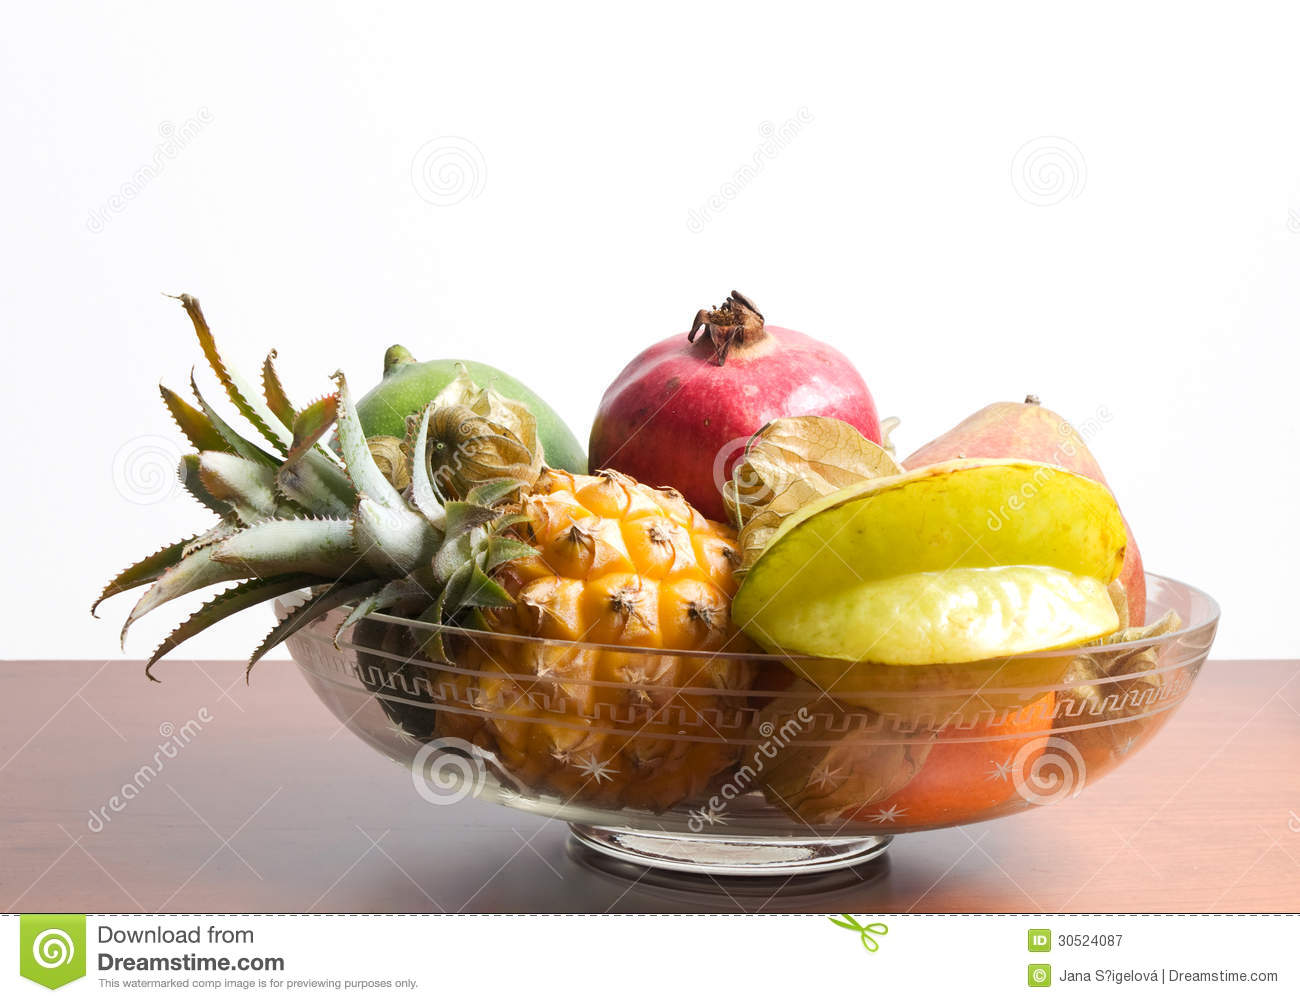 Unusual Fruit Bowls Fruits On Glass Bowl Royalty Free Stock Photography